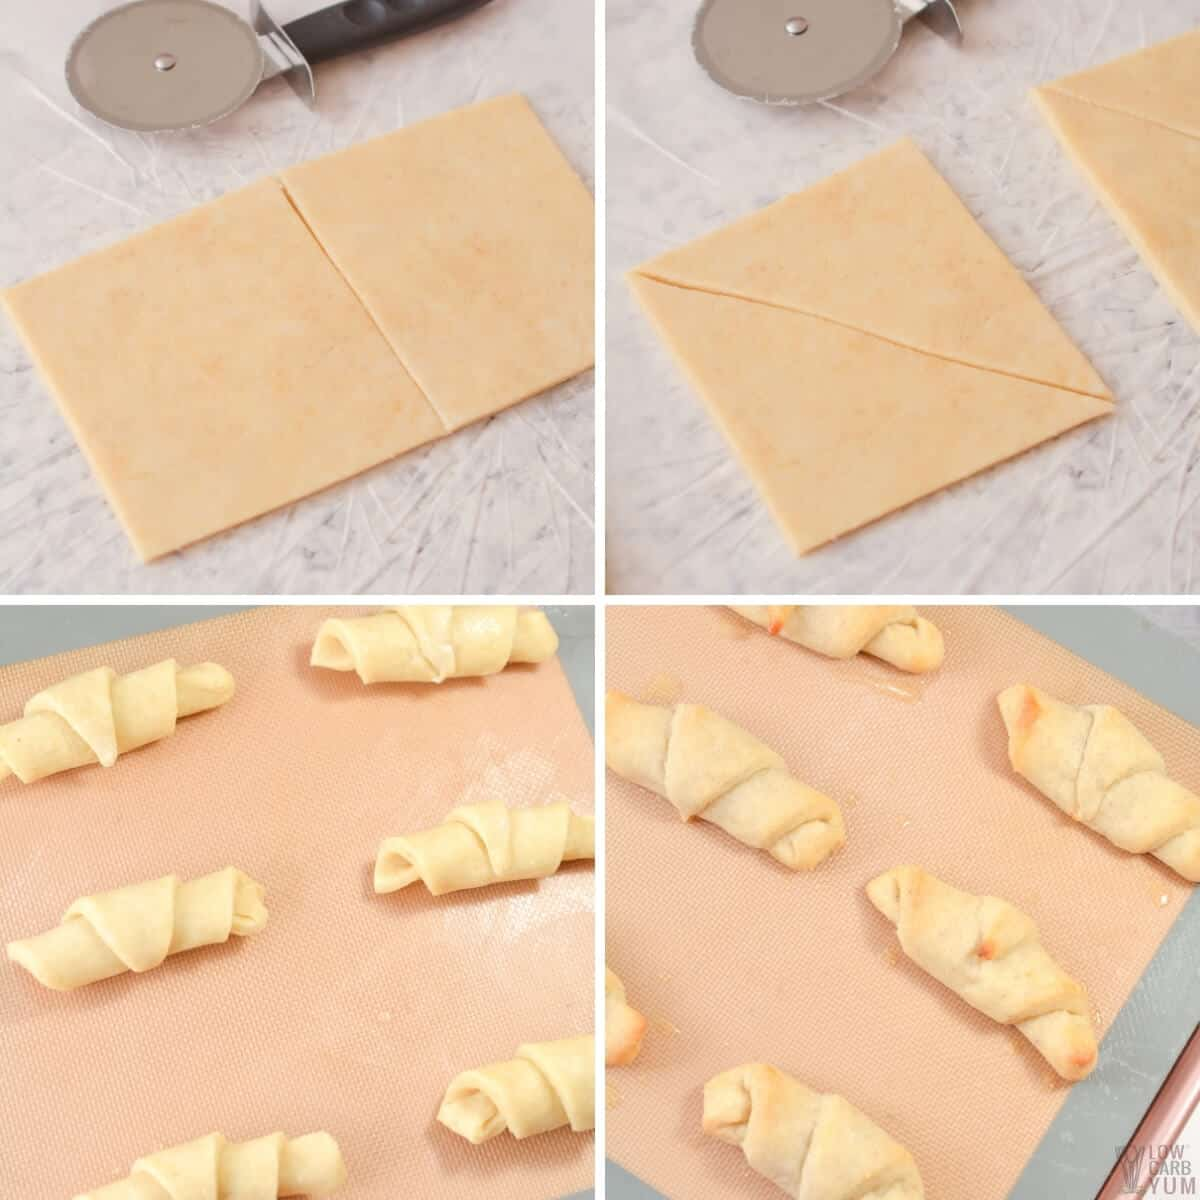 preparing and baking the croissants